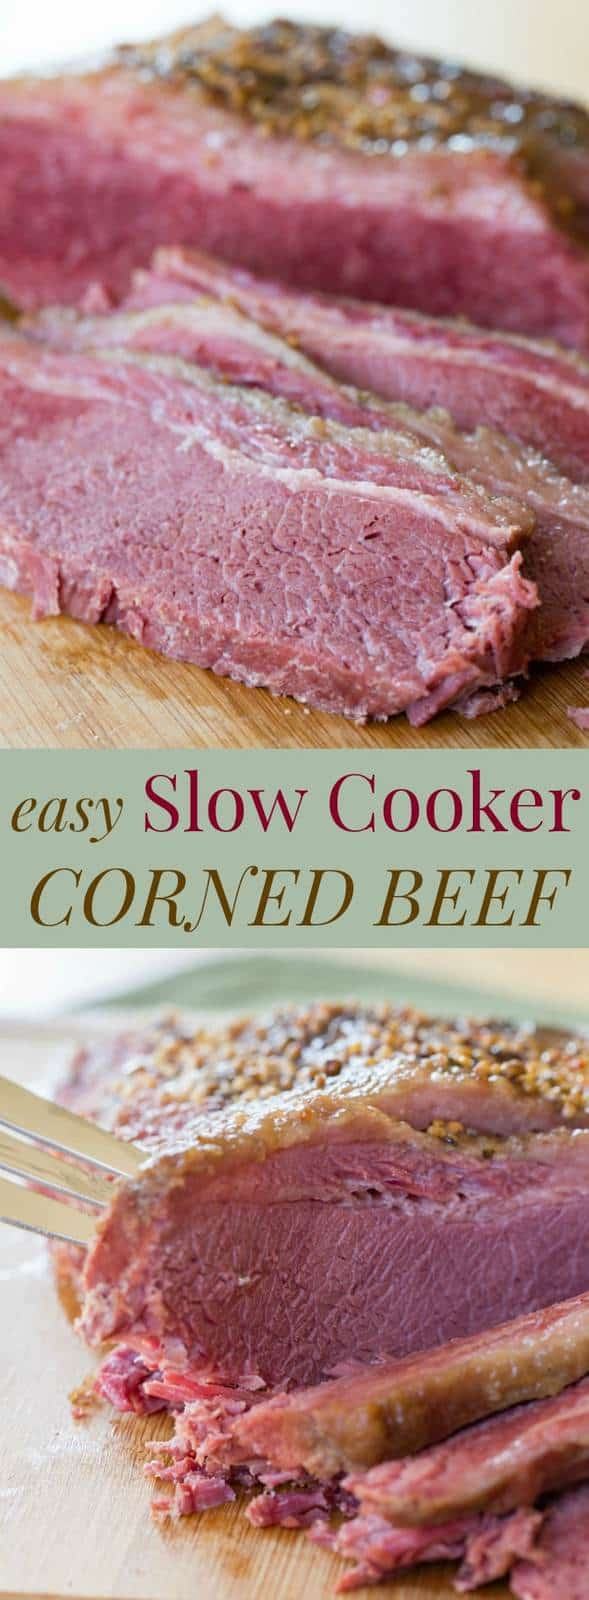 Easy Slow Cooker Corned Beef made in the crockpot for St. Patrick's Day